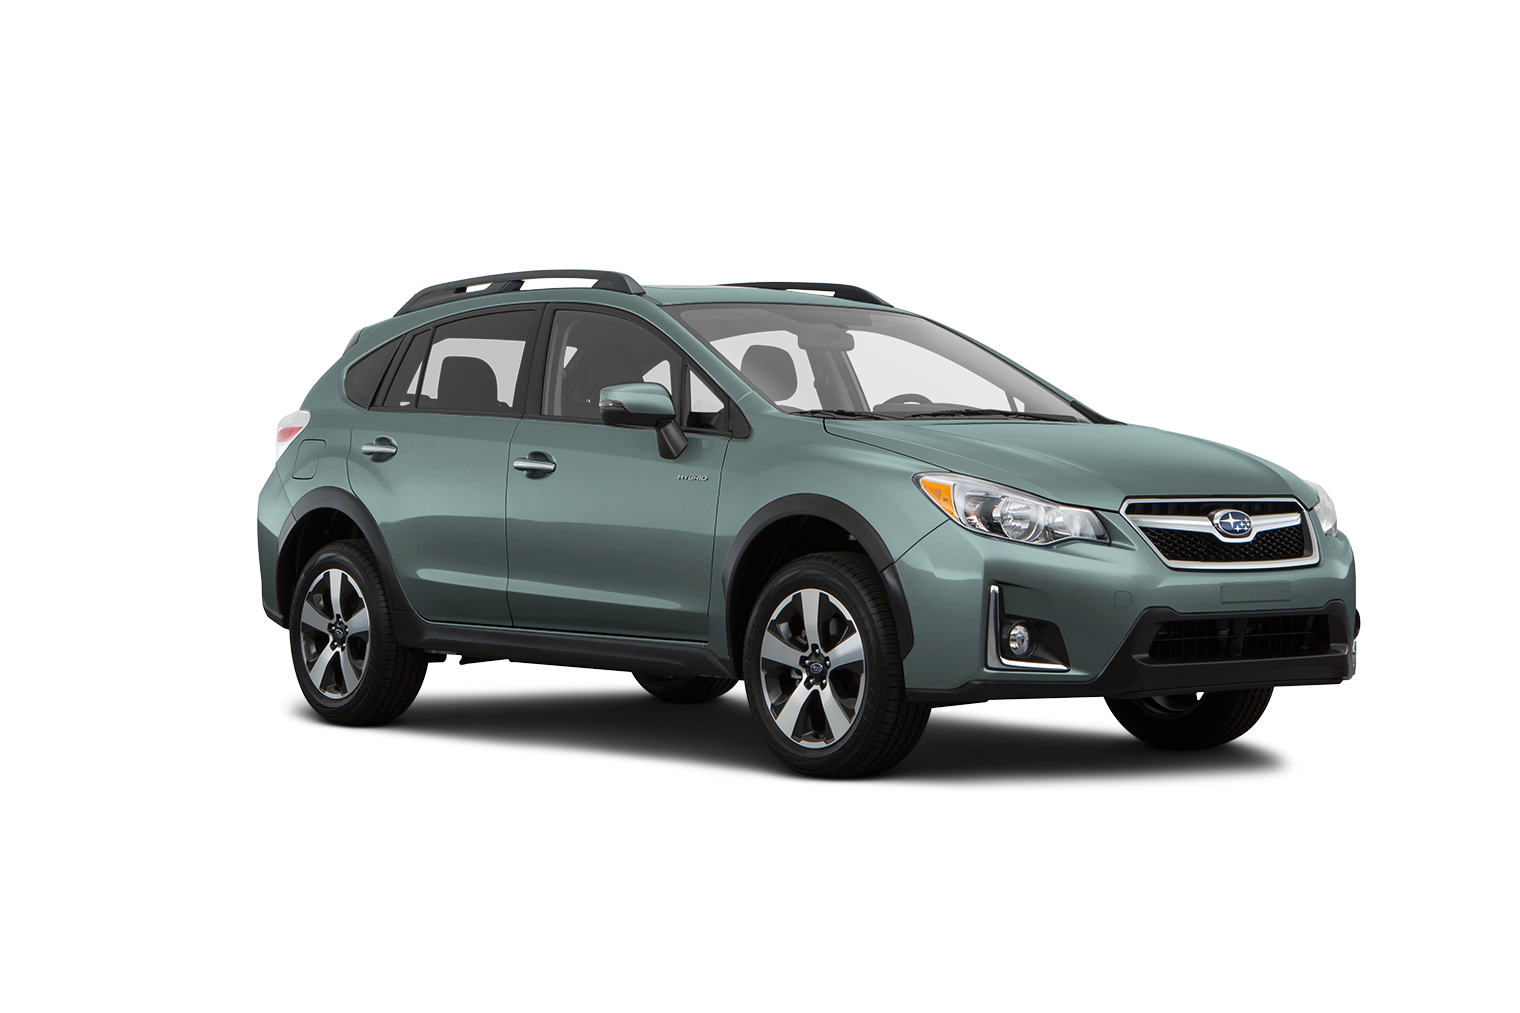 Build Your Own Subaru >> Build Your Own Subaru Crosstrek On The Official Site Customize An